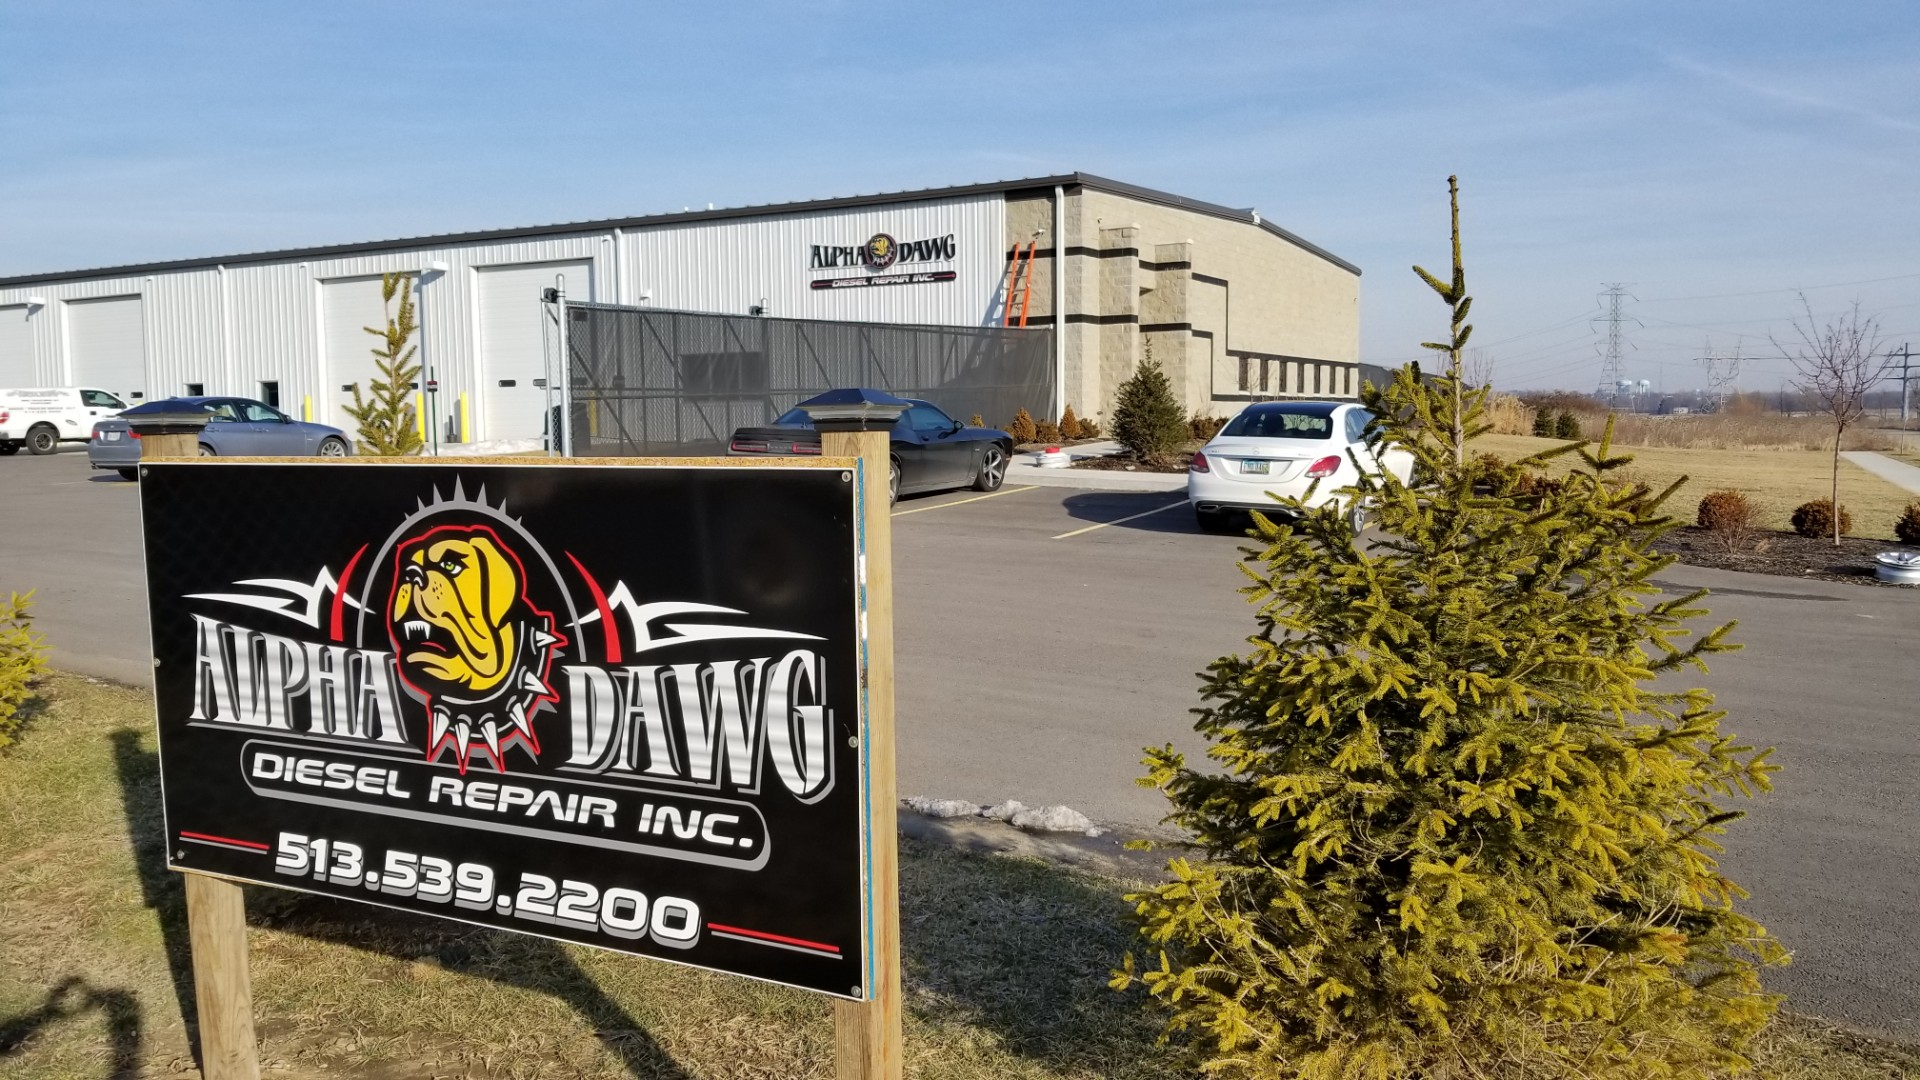 ALPHA DAWG Diesel Repair, Inc.